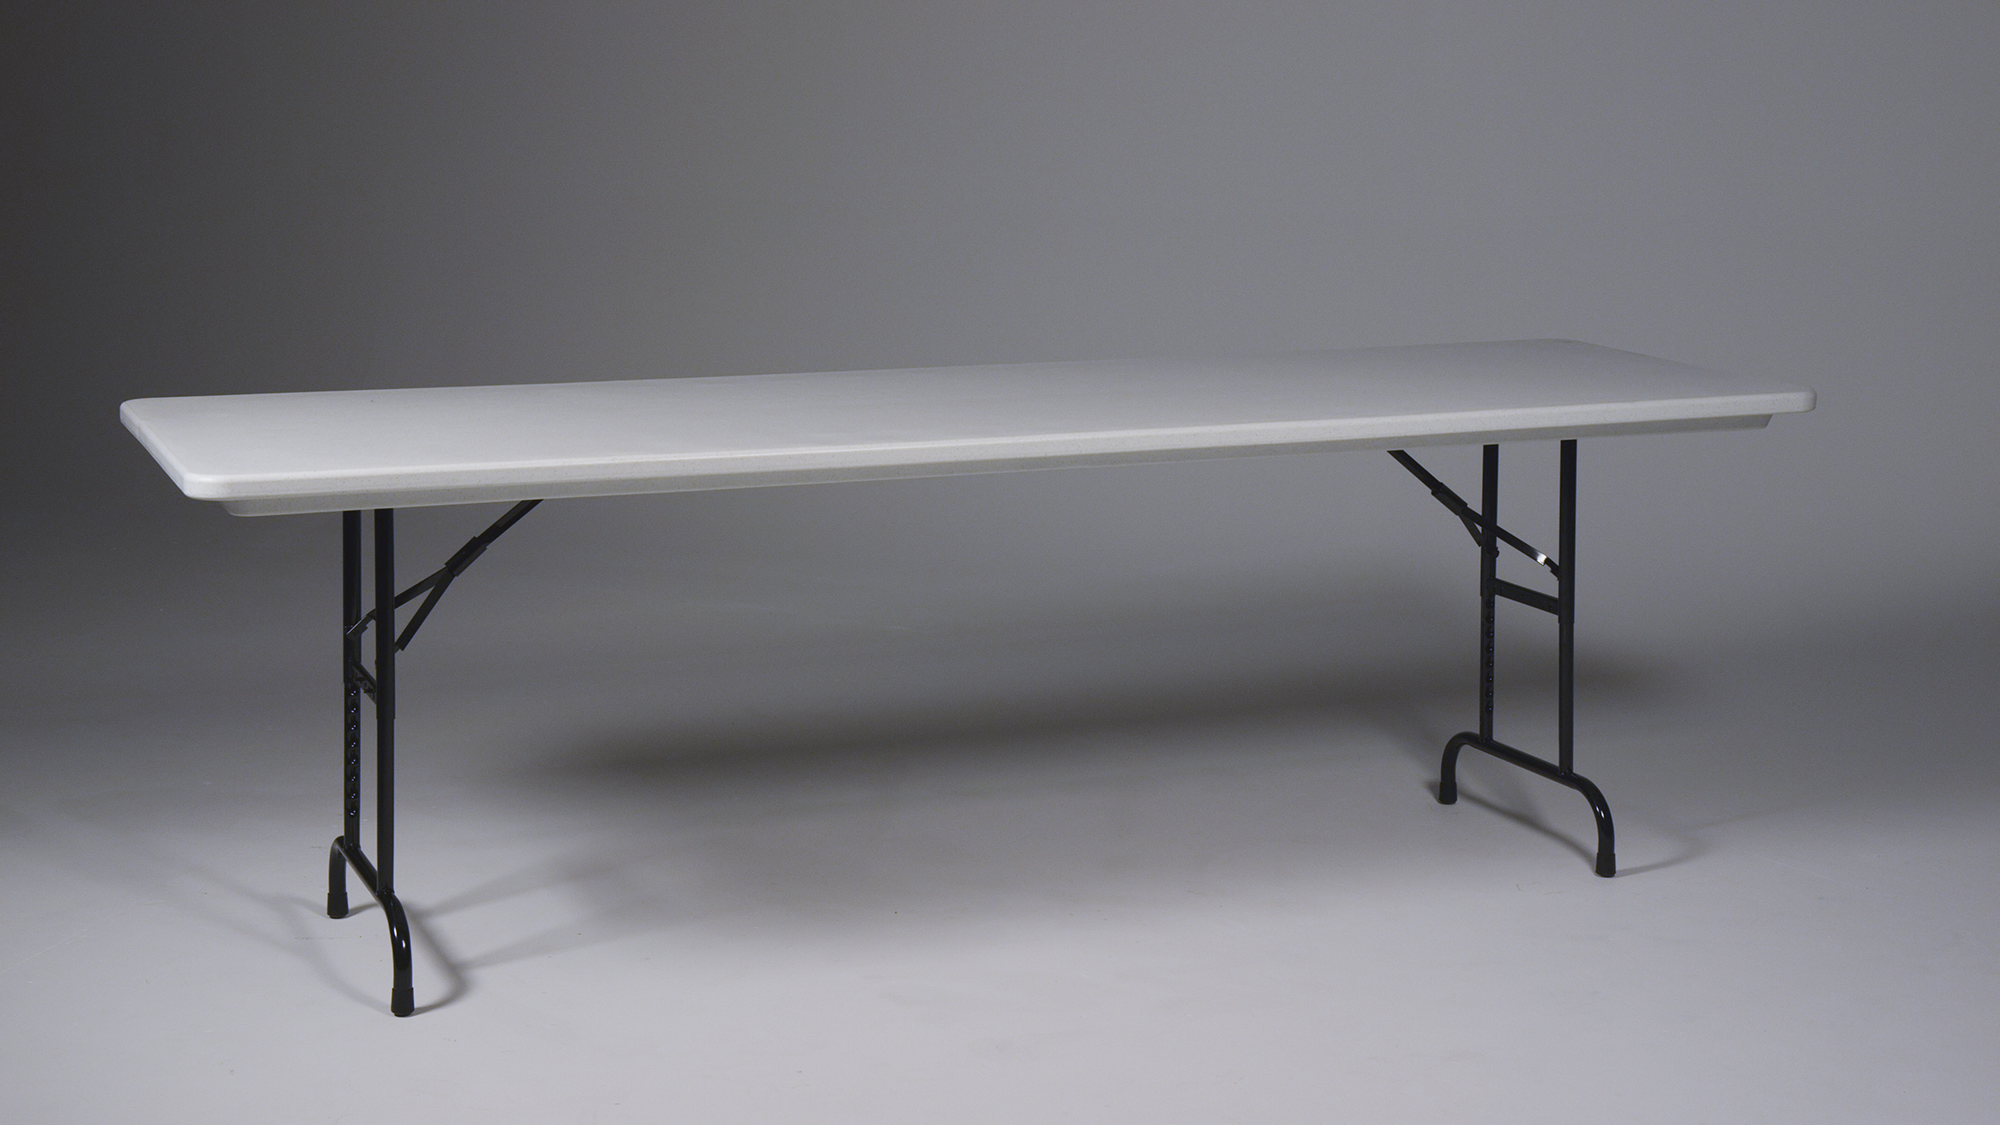 Polylite Blow Molded Table featuring Gravity Lock Folding Legs.png